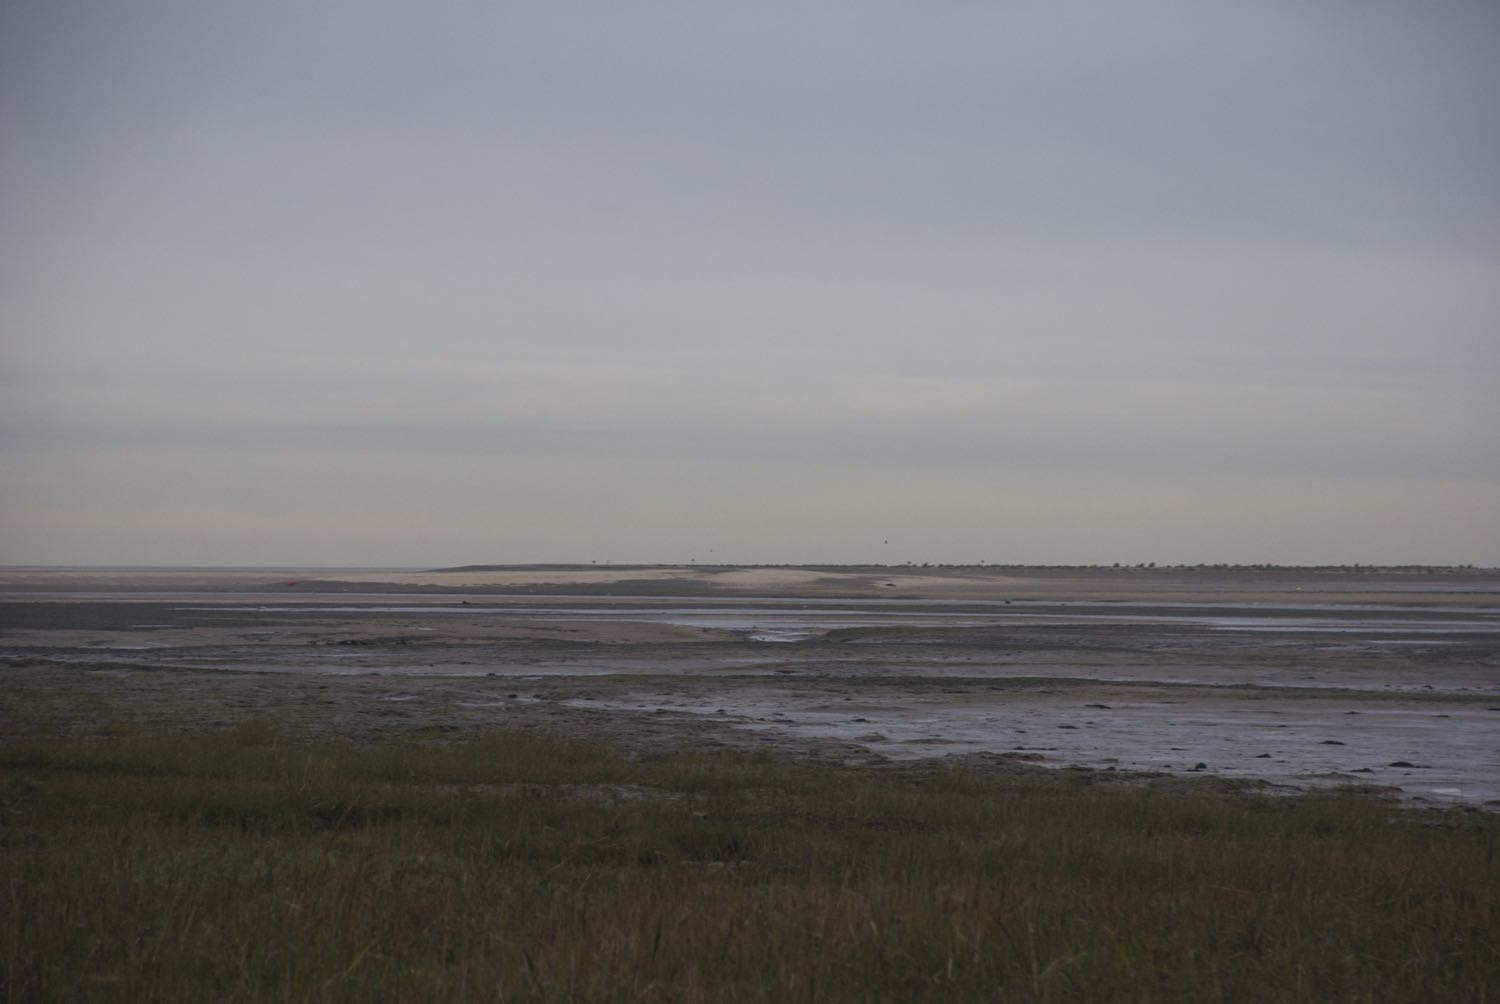 Twilight.  A very low tide in the Blakeney Channel (seen from the Morston side) made it look as though we could almost walk across to Blakeney Point.